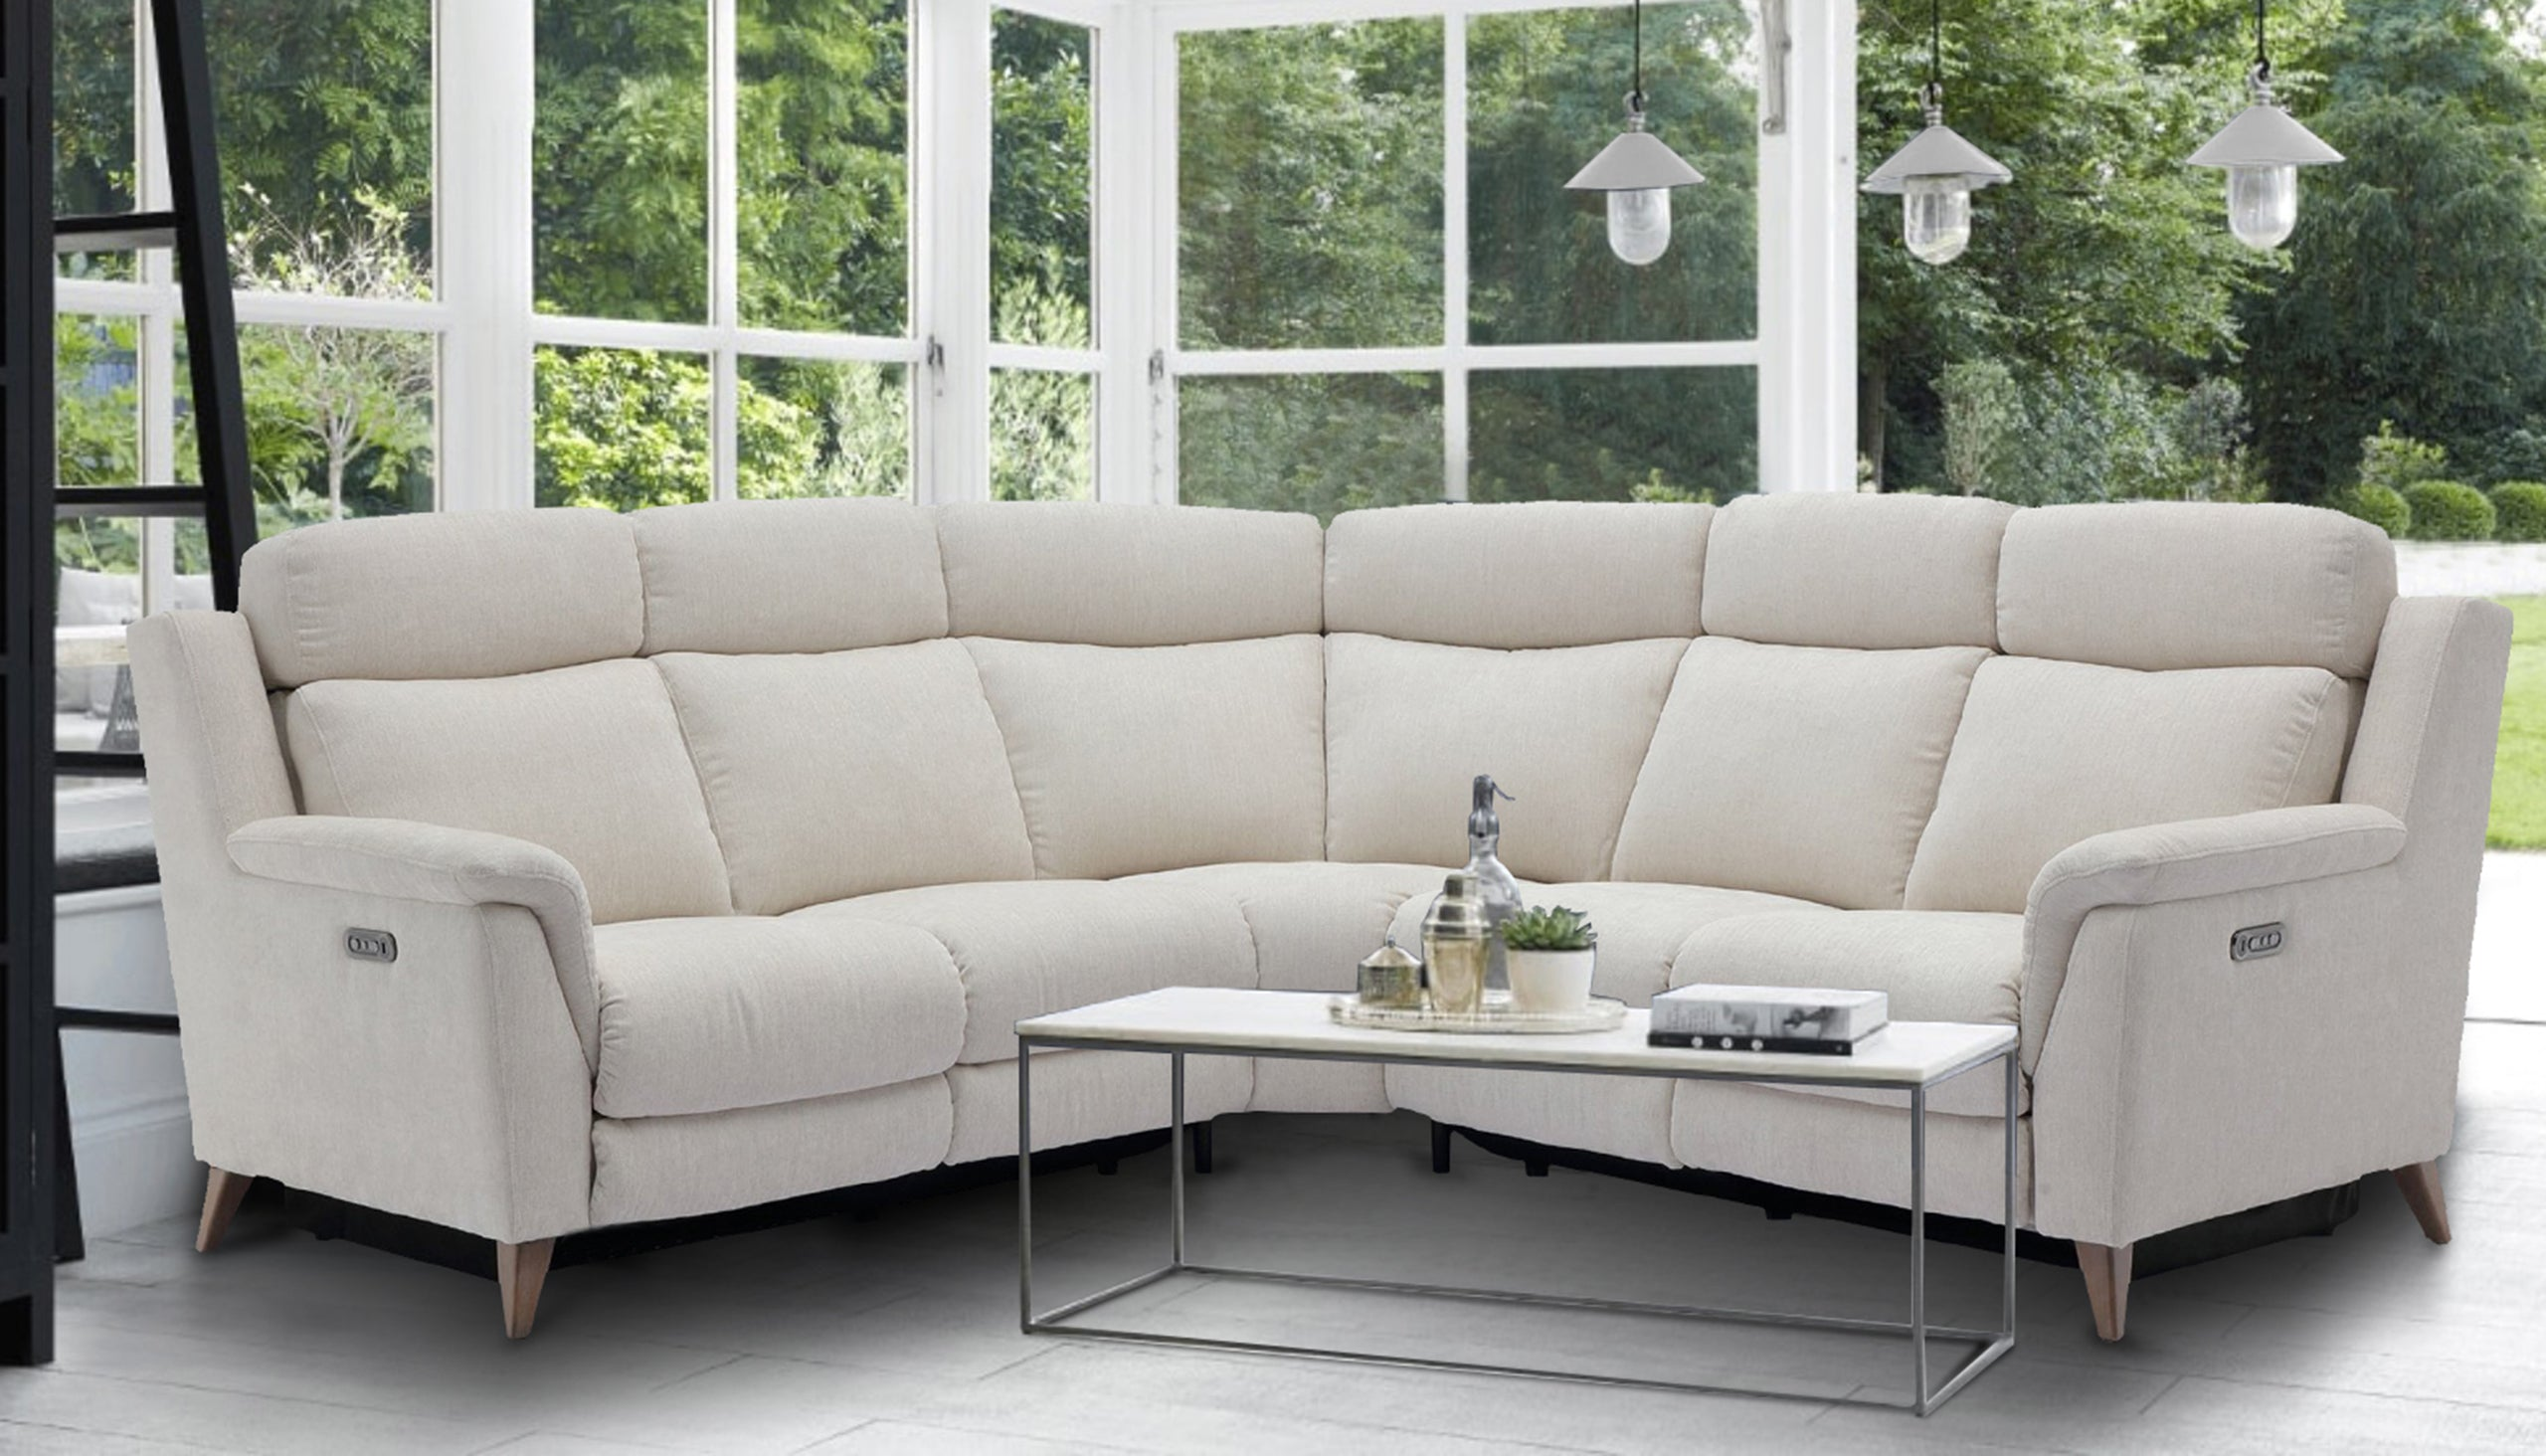 Sienna Large Double Power Recliner Corner Sofa with Power Headrests in Fabric